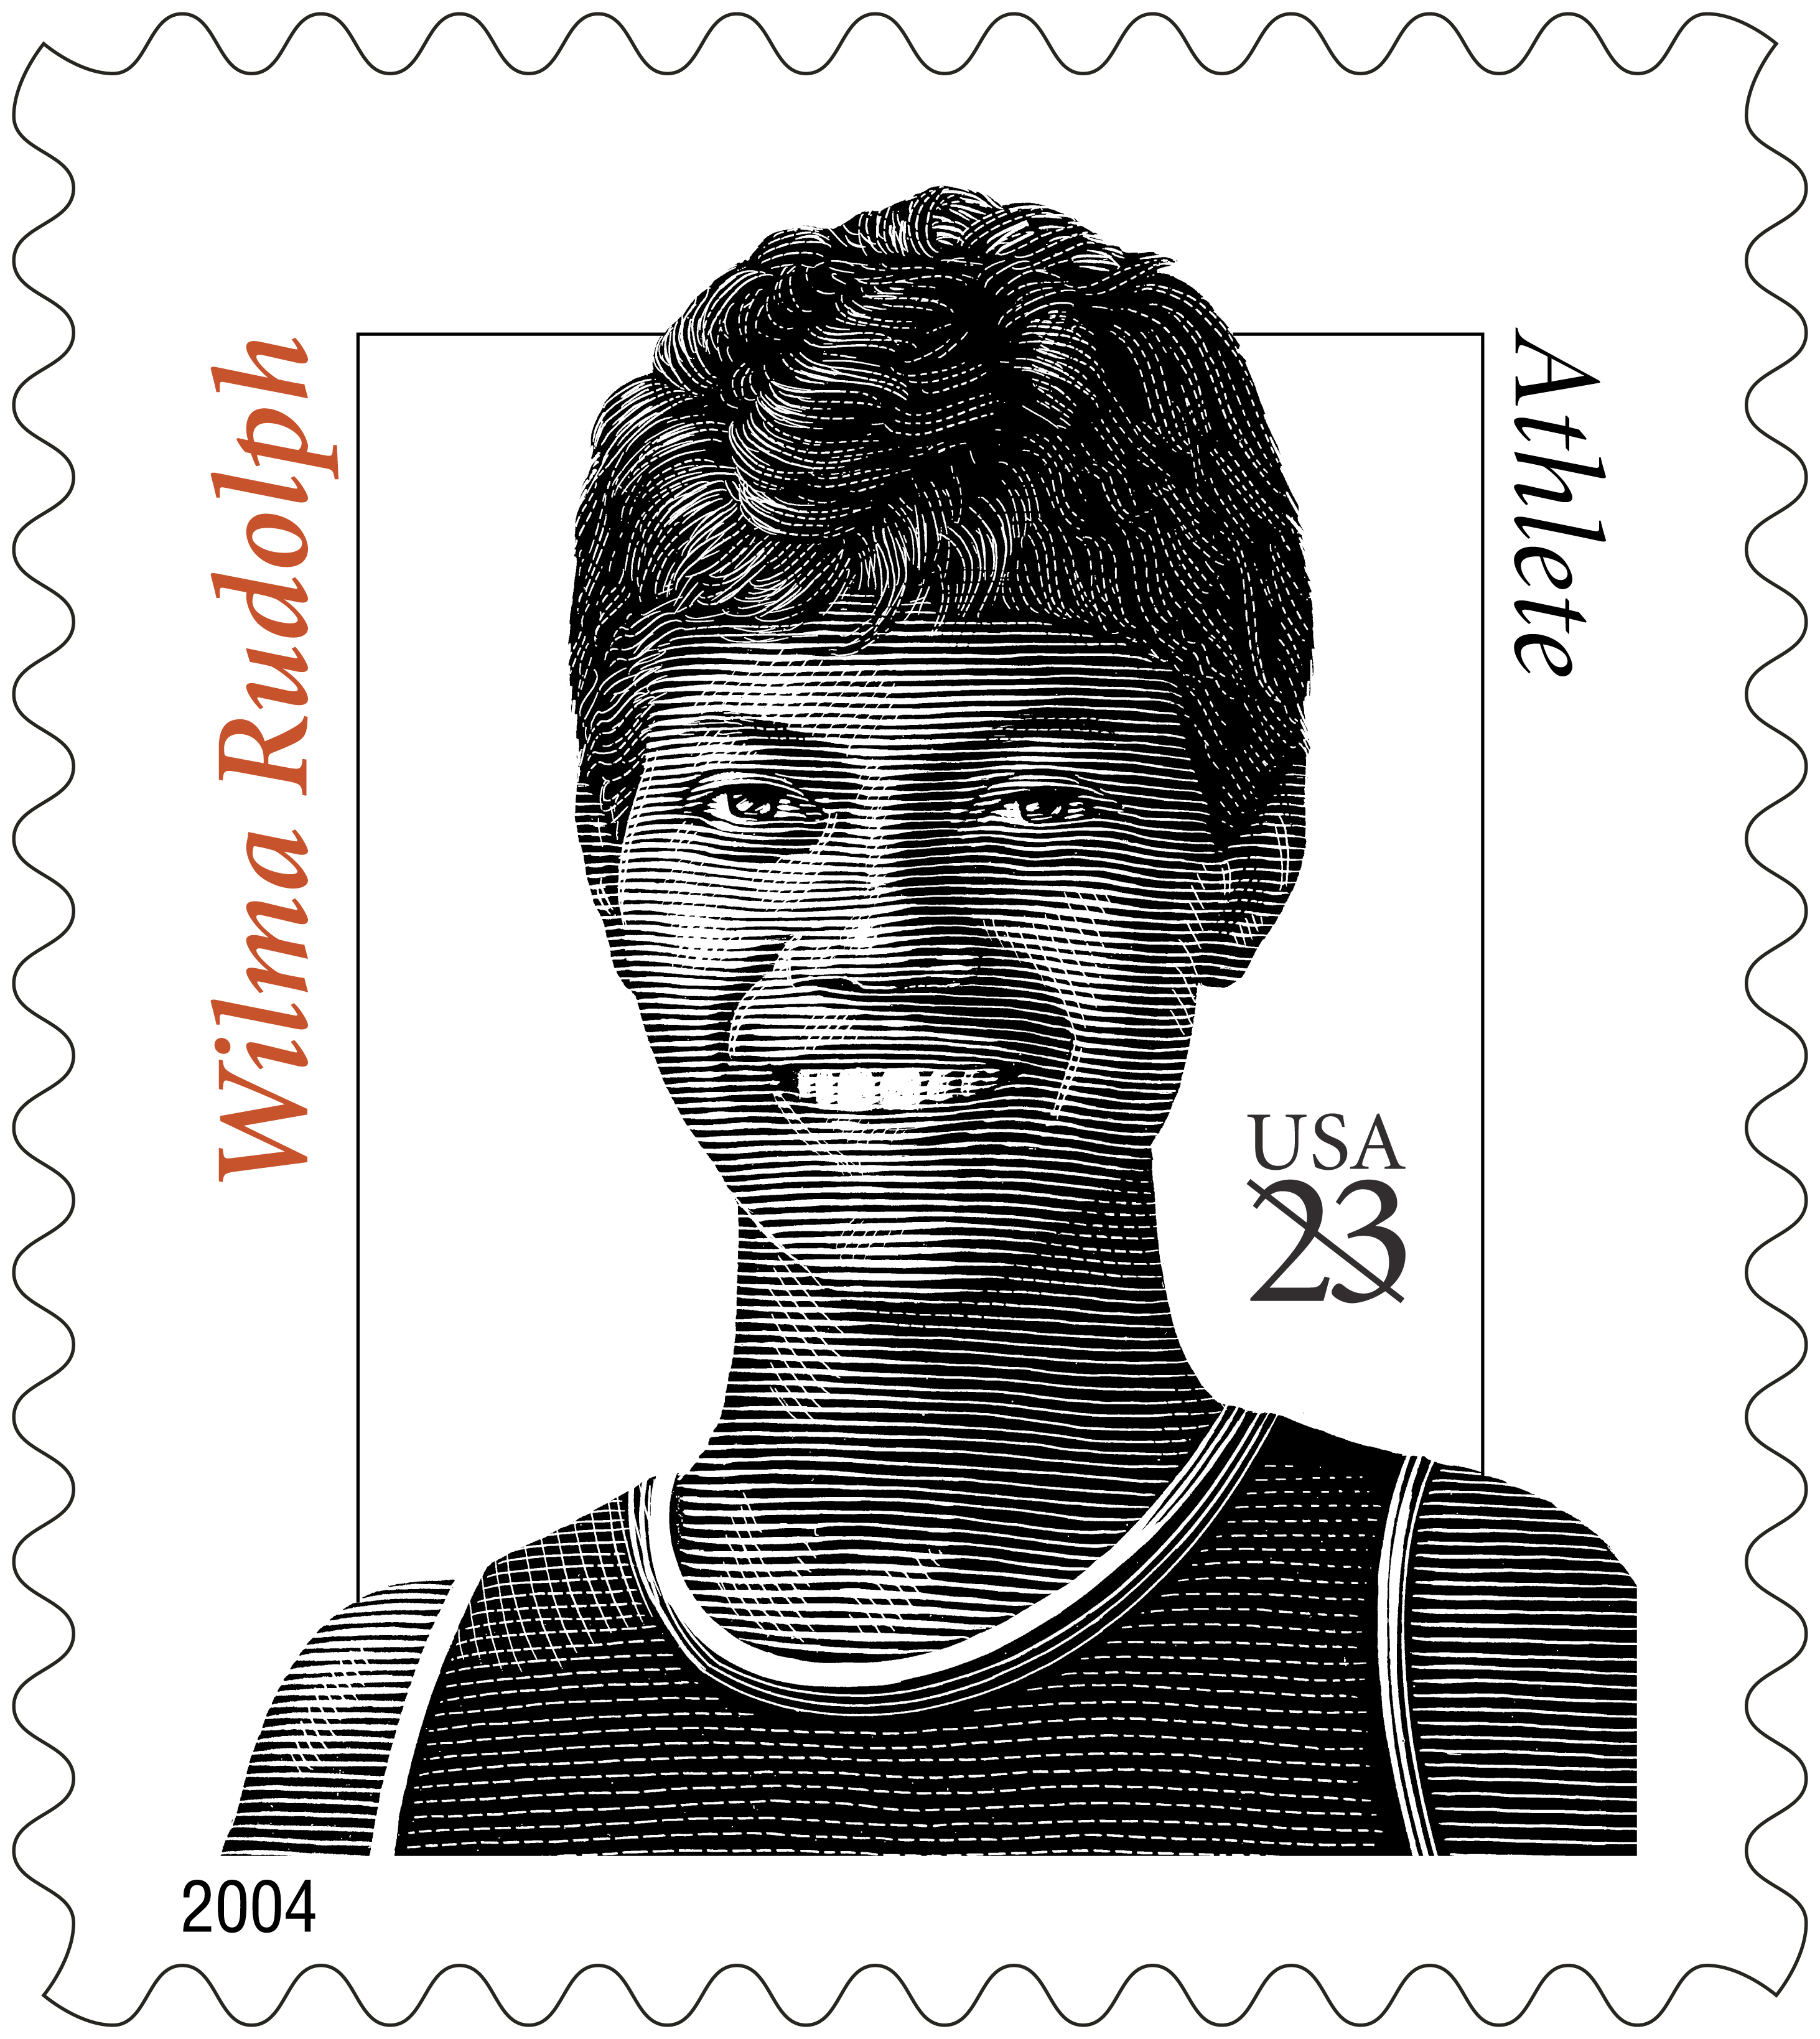 Unfazed by illness injury pioneering athlete wilma rudolph set wilma voltagebd Choice Image